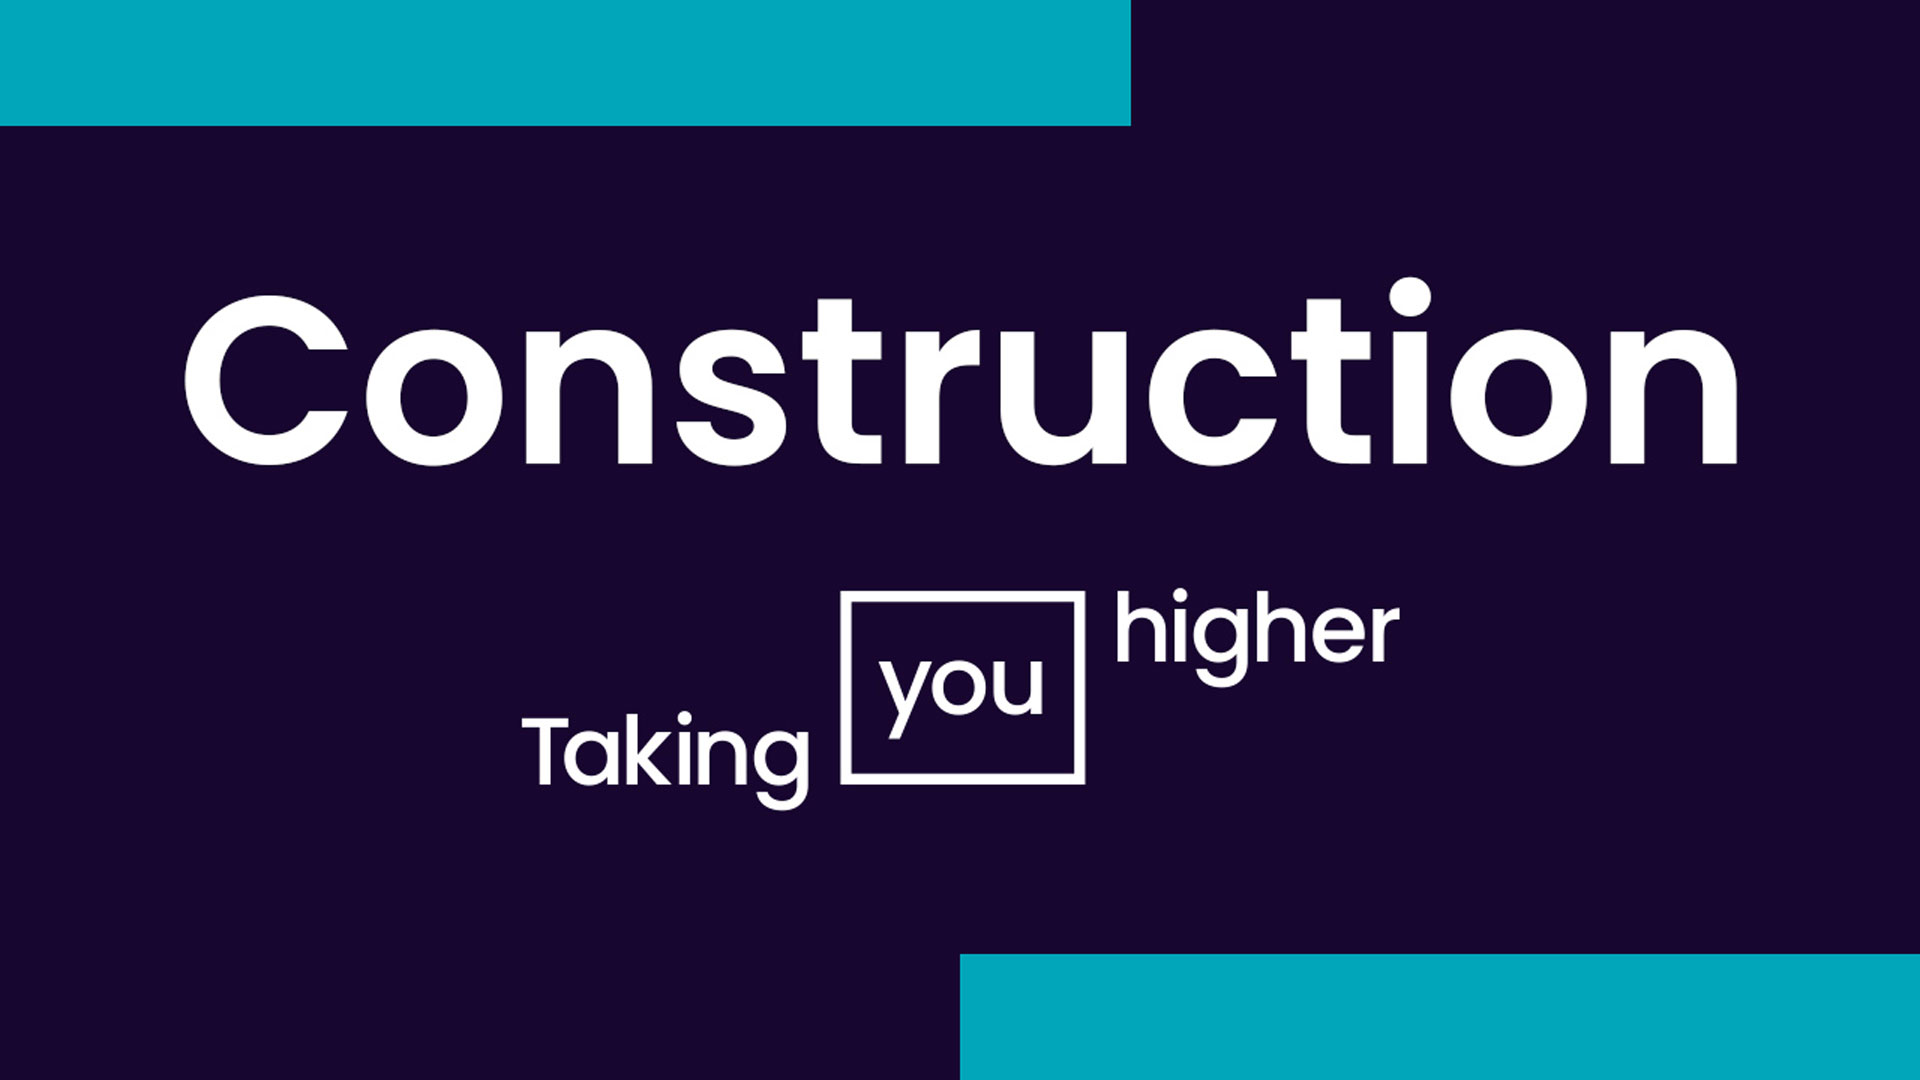 Middlesbrough College Construction Courses